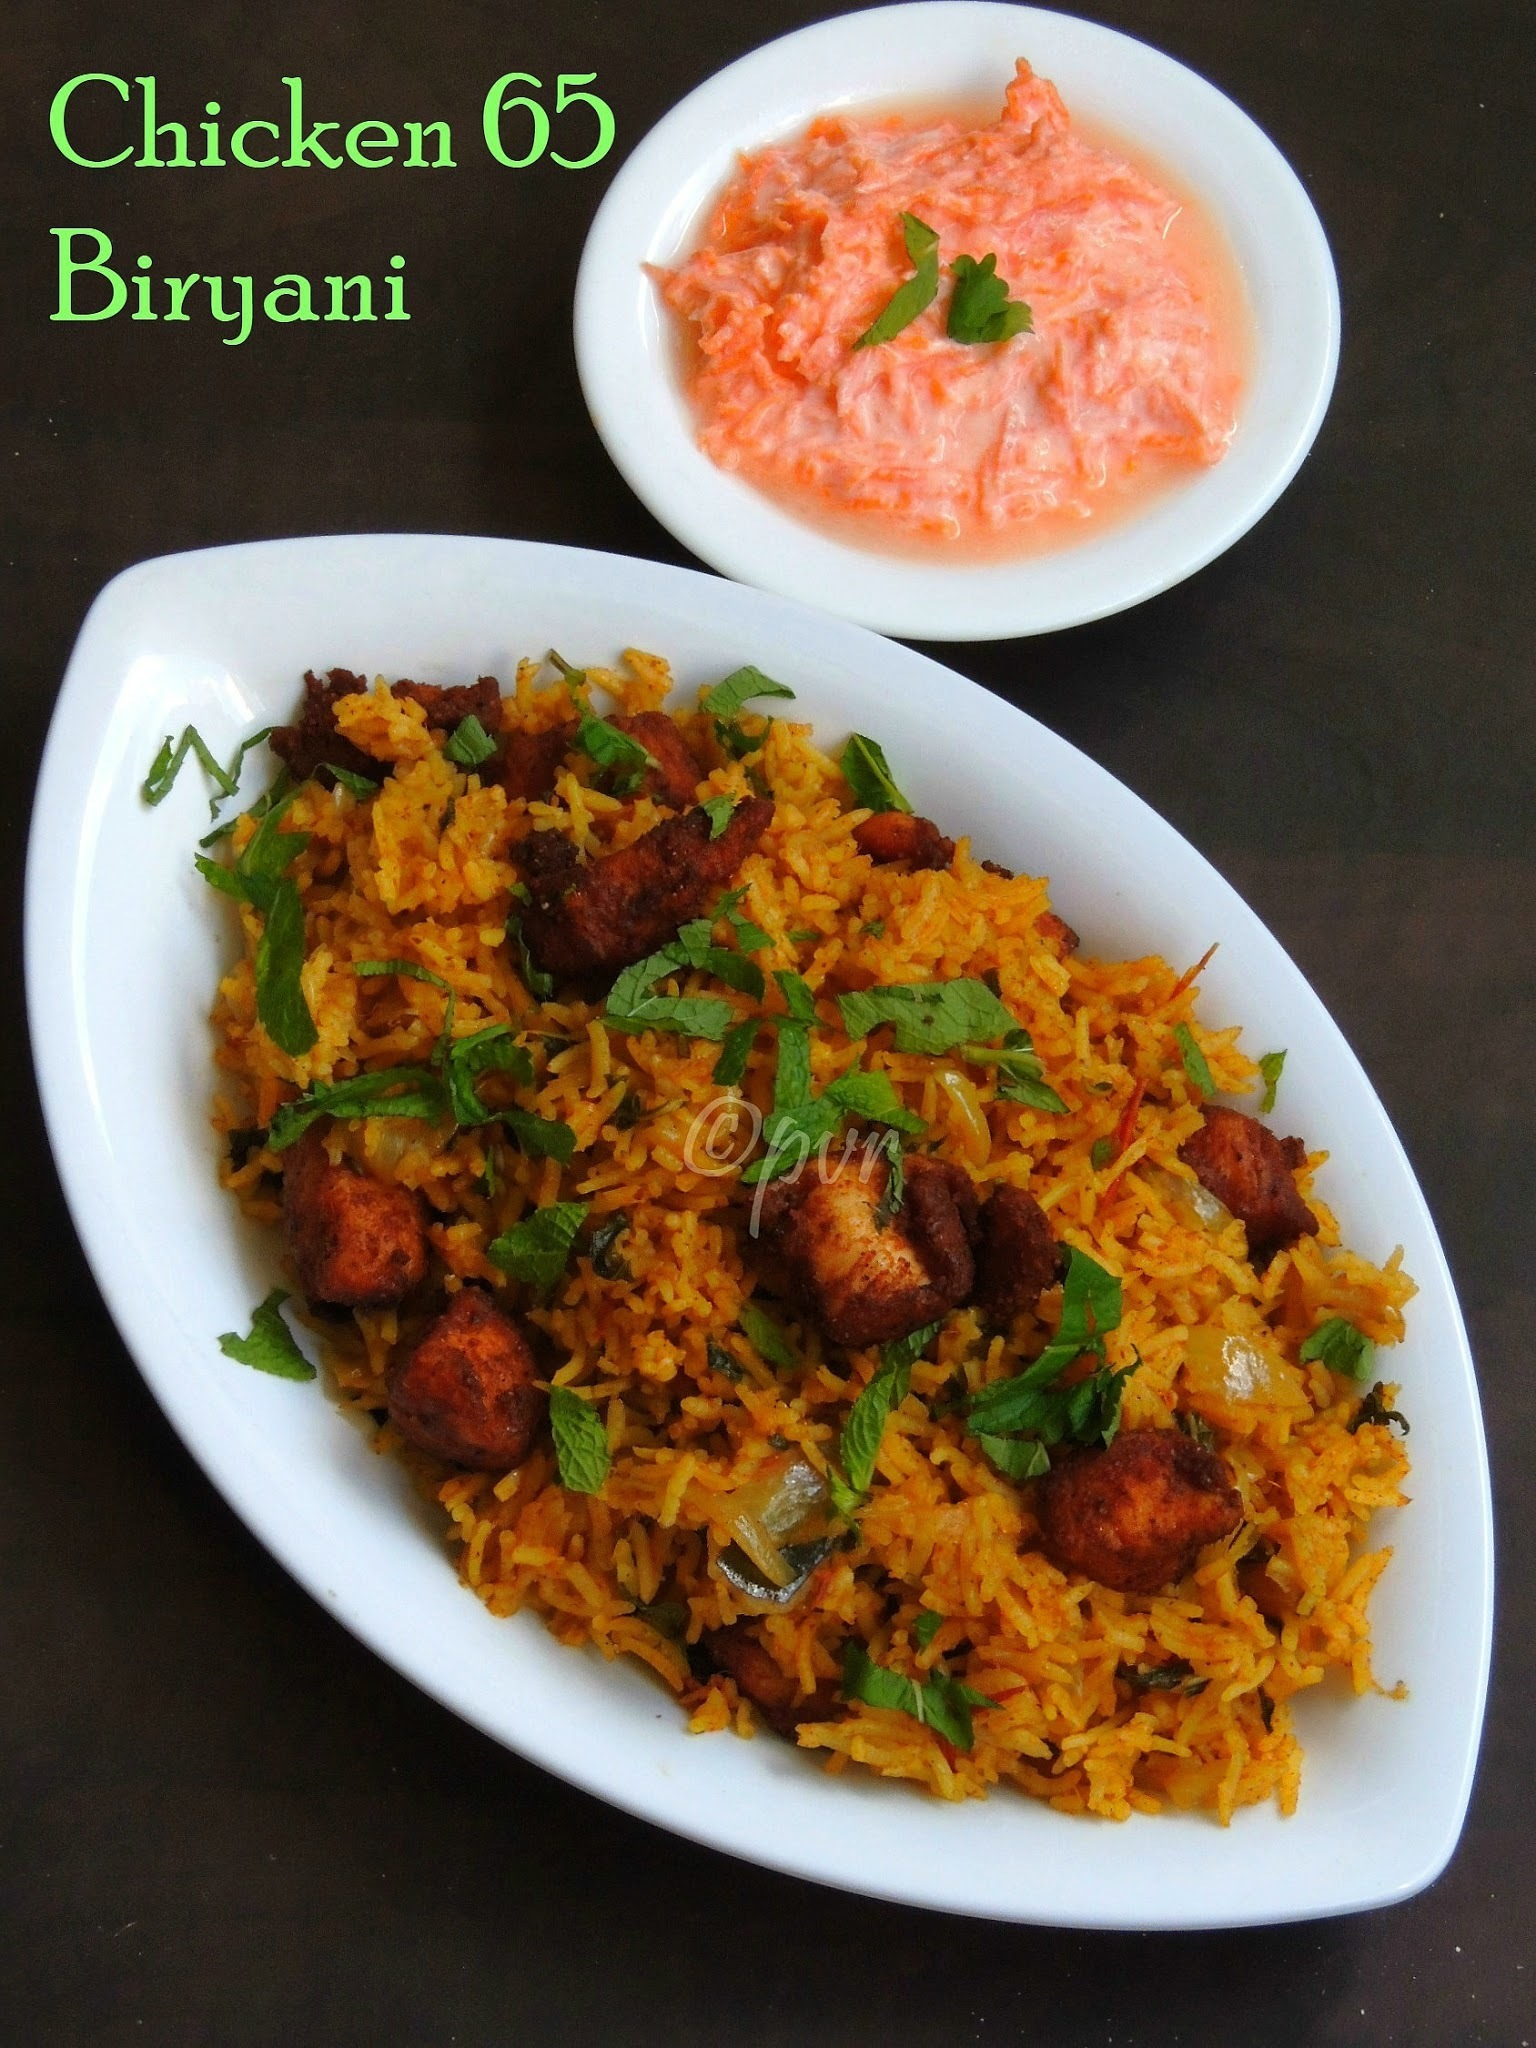 Chicken 65 Biriyani/Chicken 65 Biryani